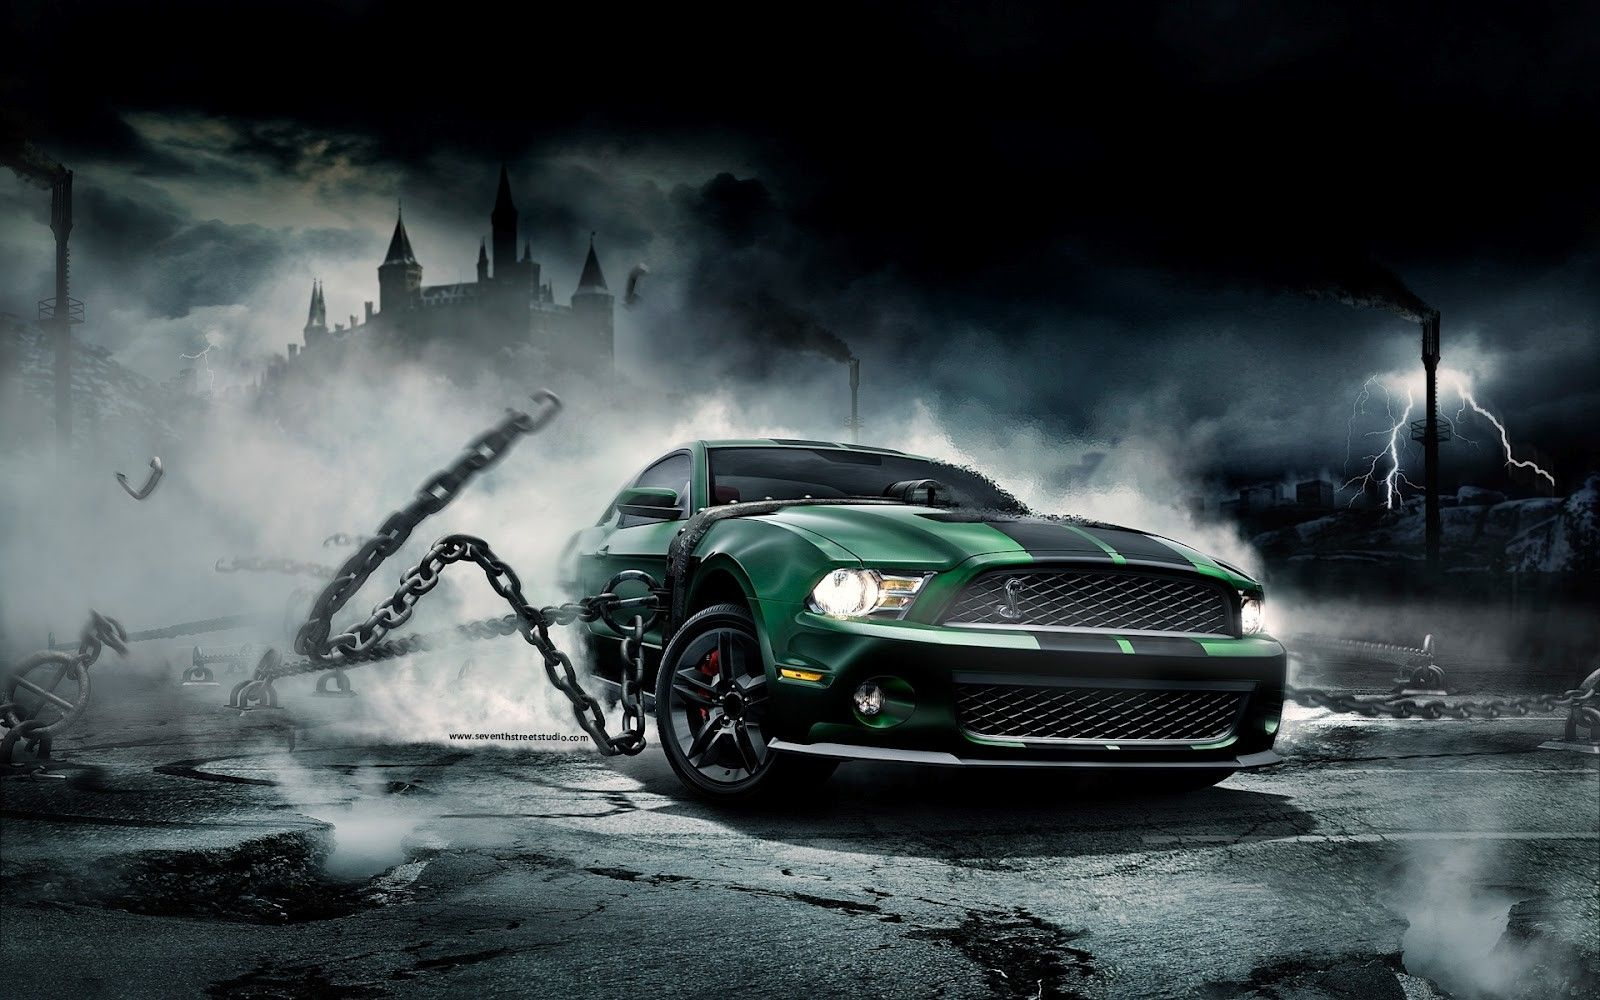 Hd Wallpapers For Pc Ford Mustang Wallpaper Mustang Wallpaper Car Backgrounds